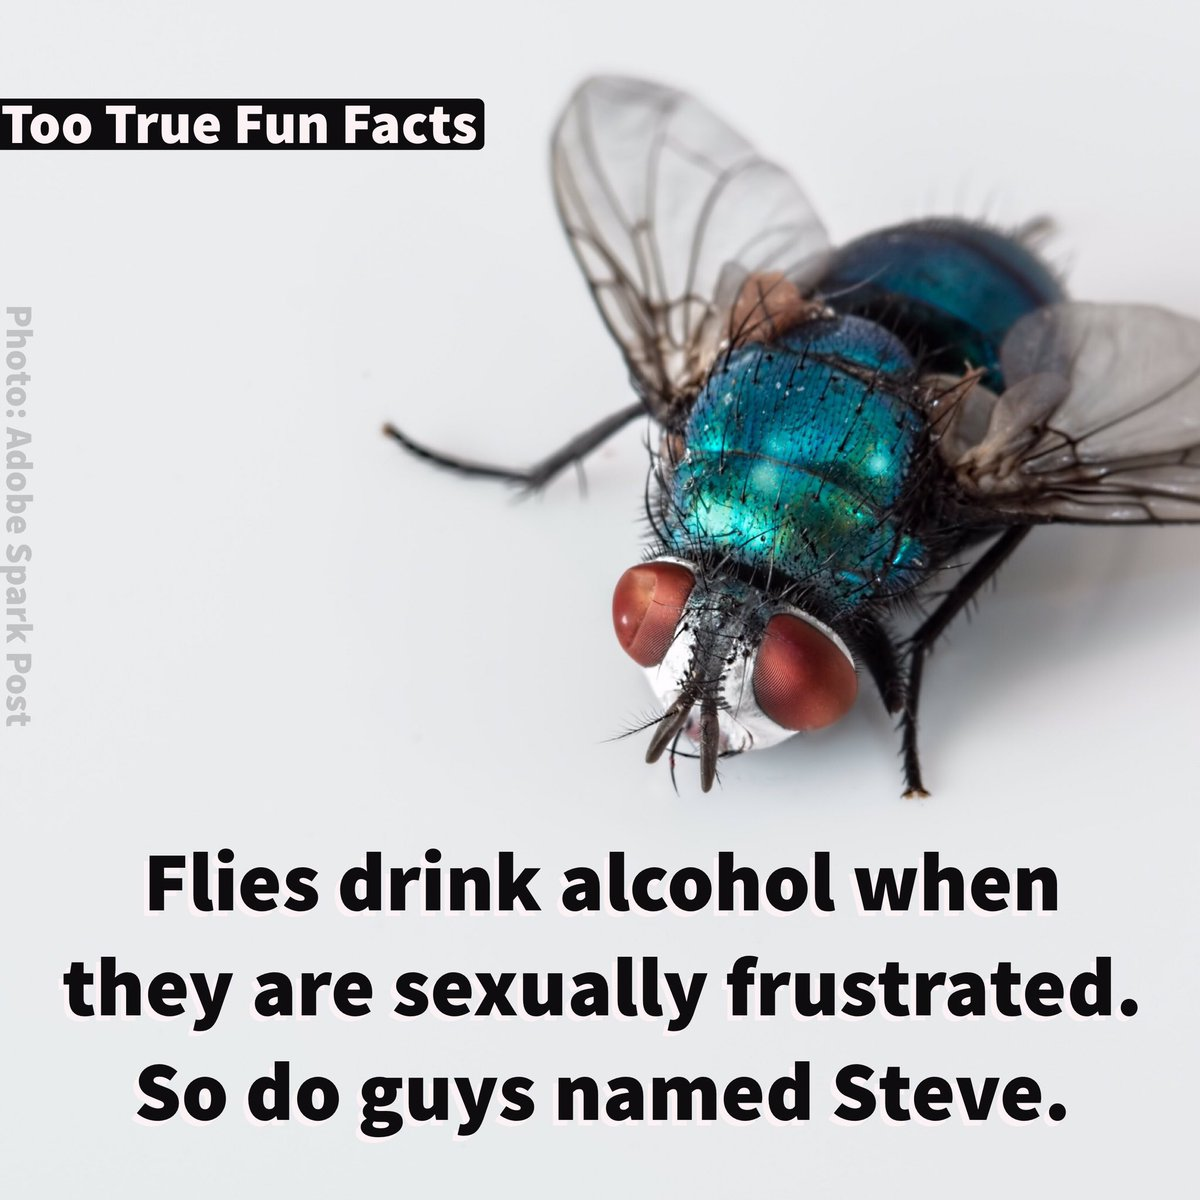 True strange facts about sex